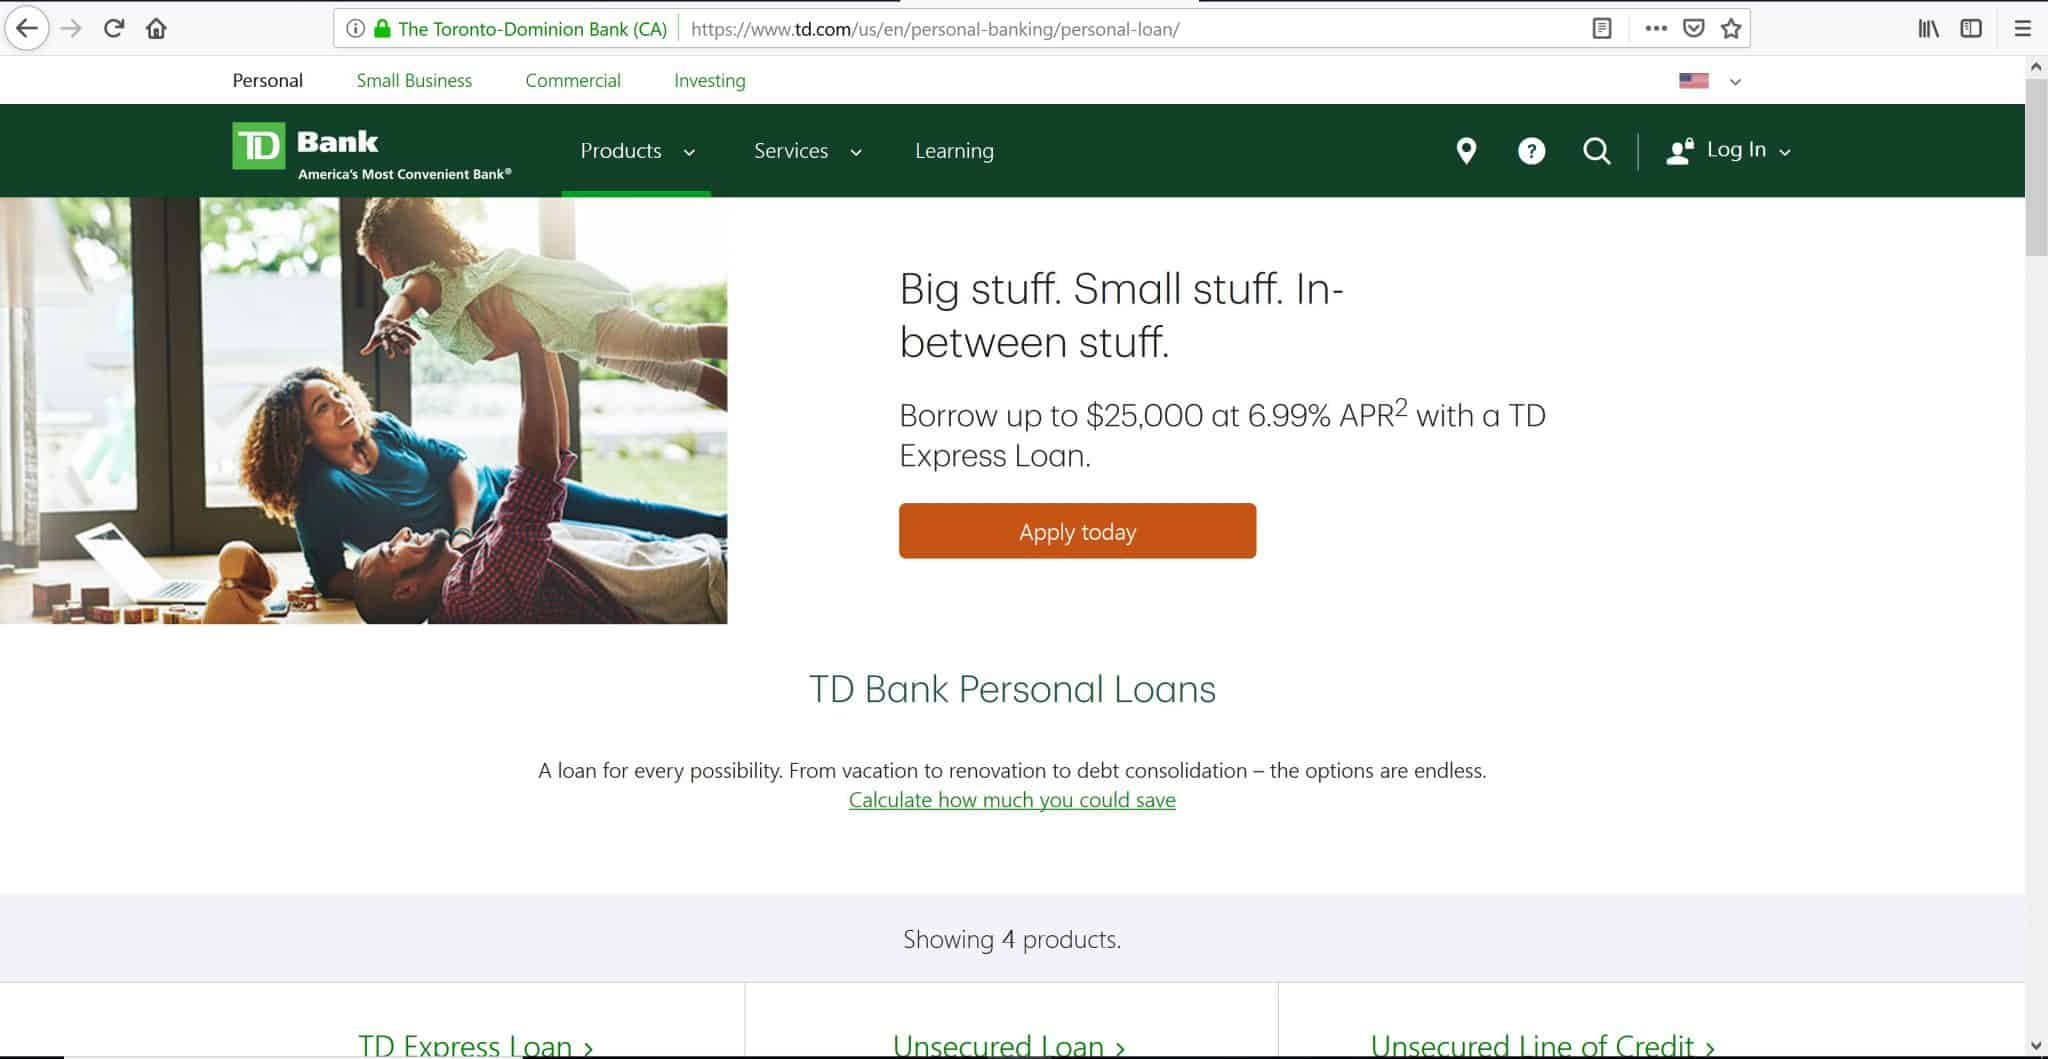 TD Personal Loans